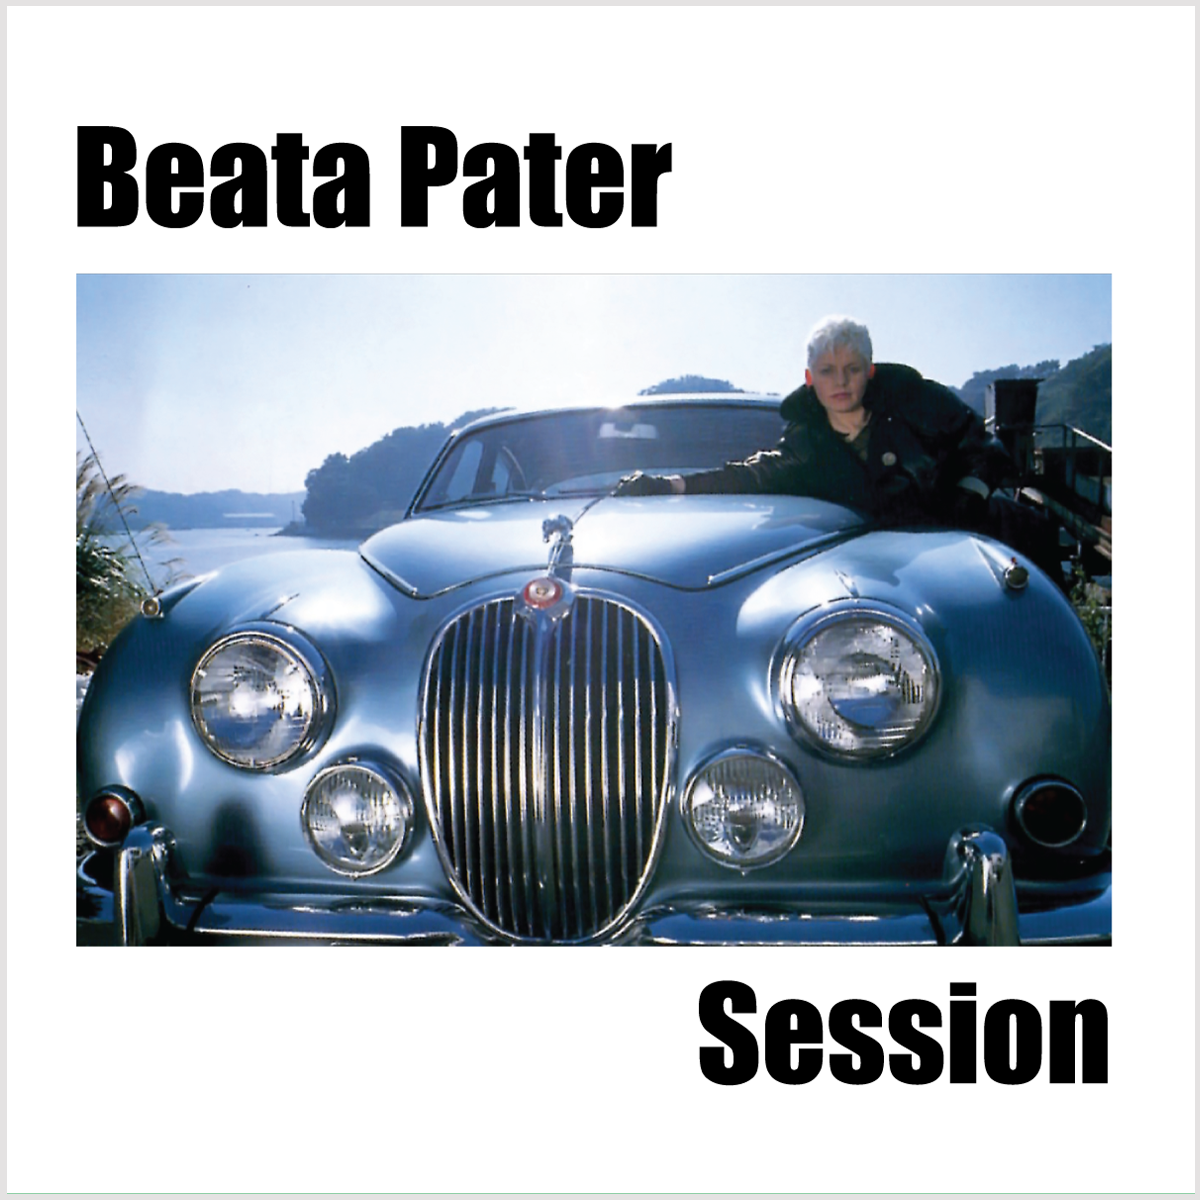 Beata Pater's Session albumSession